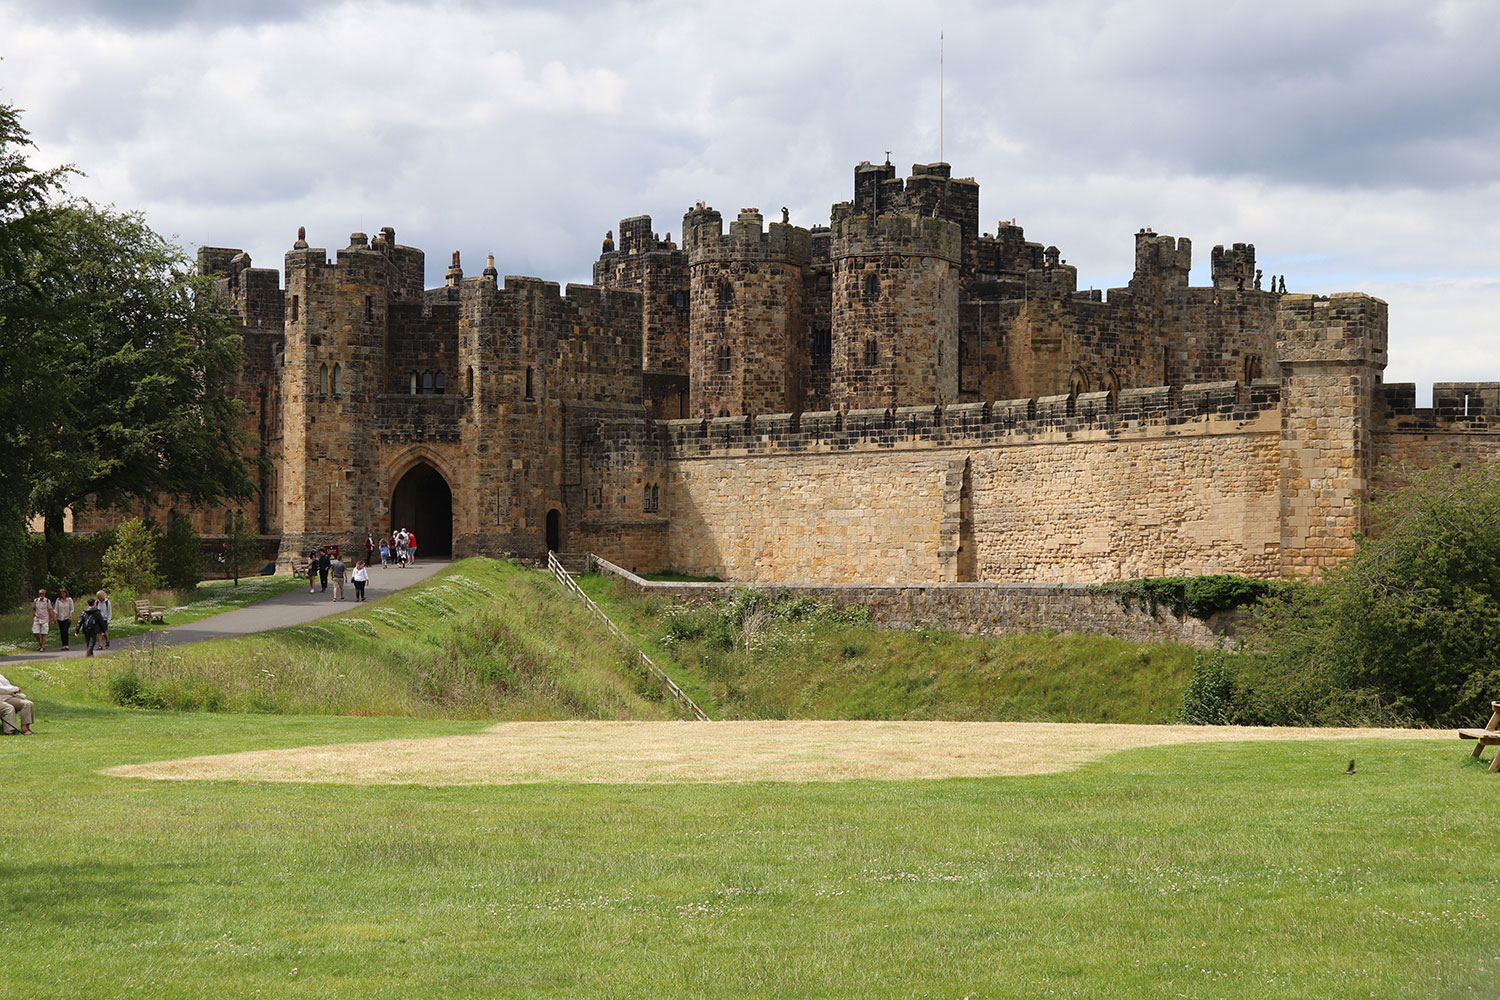 Highlight: Alnwick Castle and Gardens